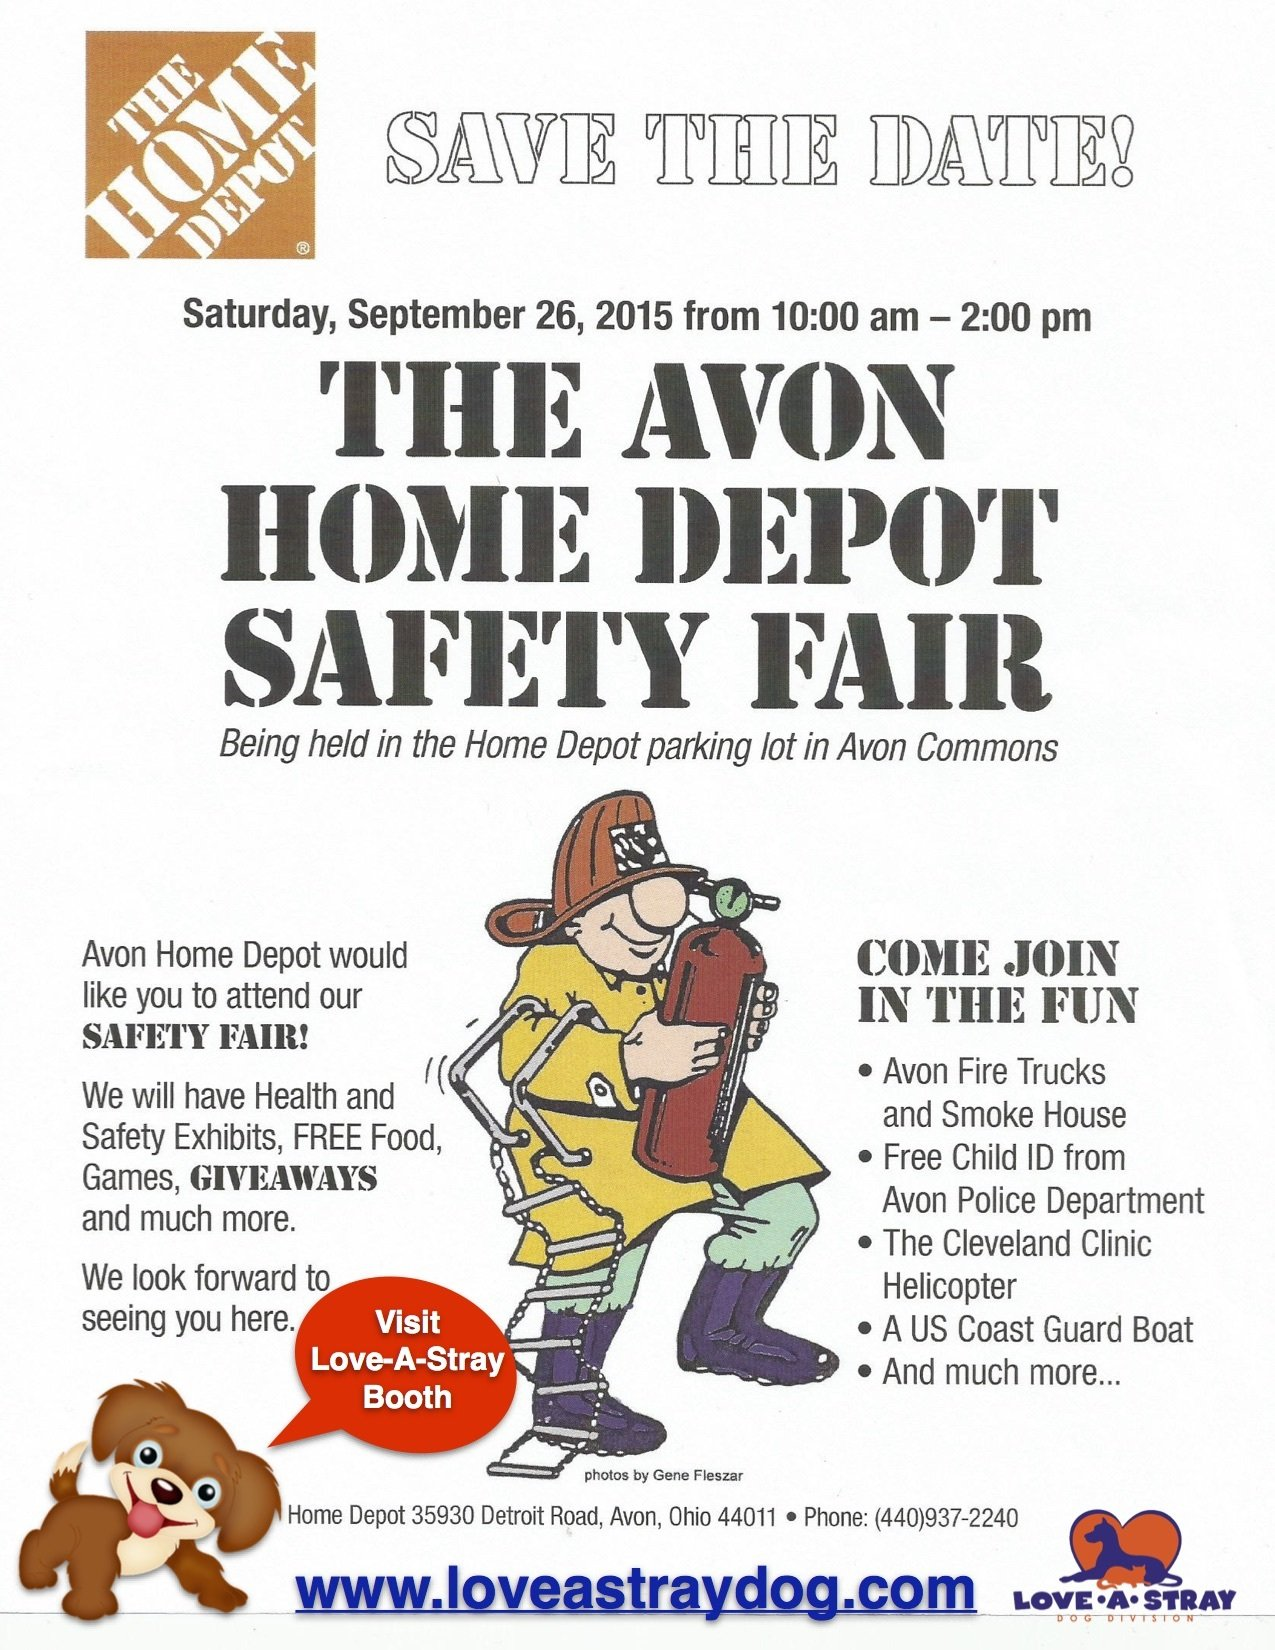 Chic Avon Home Depot Family Safety Fair Is Soil Sale Home Depot Canada Soil Sale Home Depot houzz-02 Topsoil Home Depot